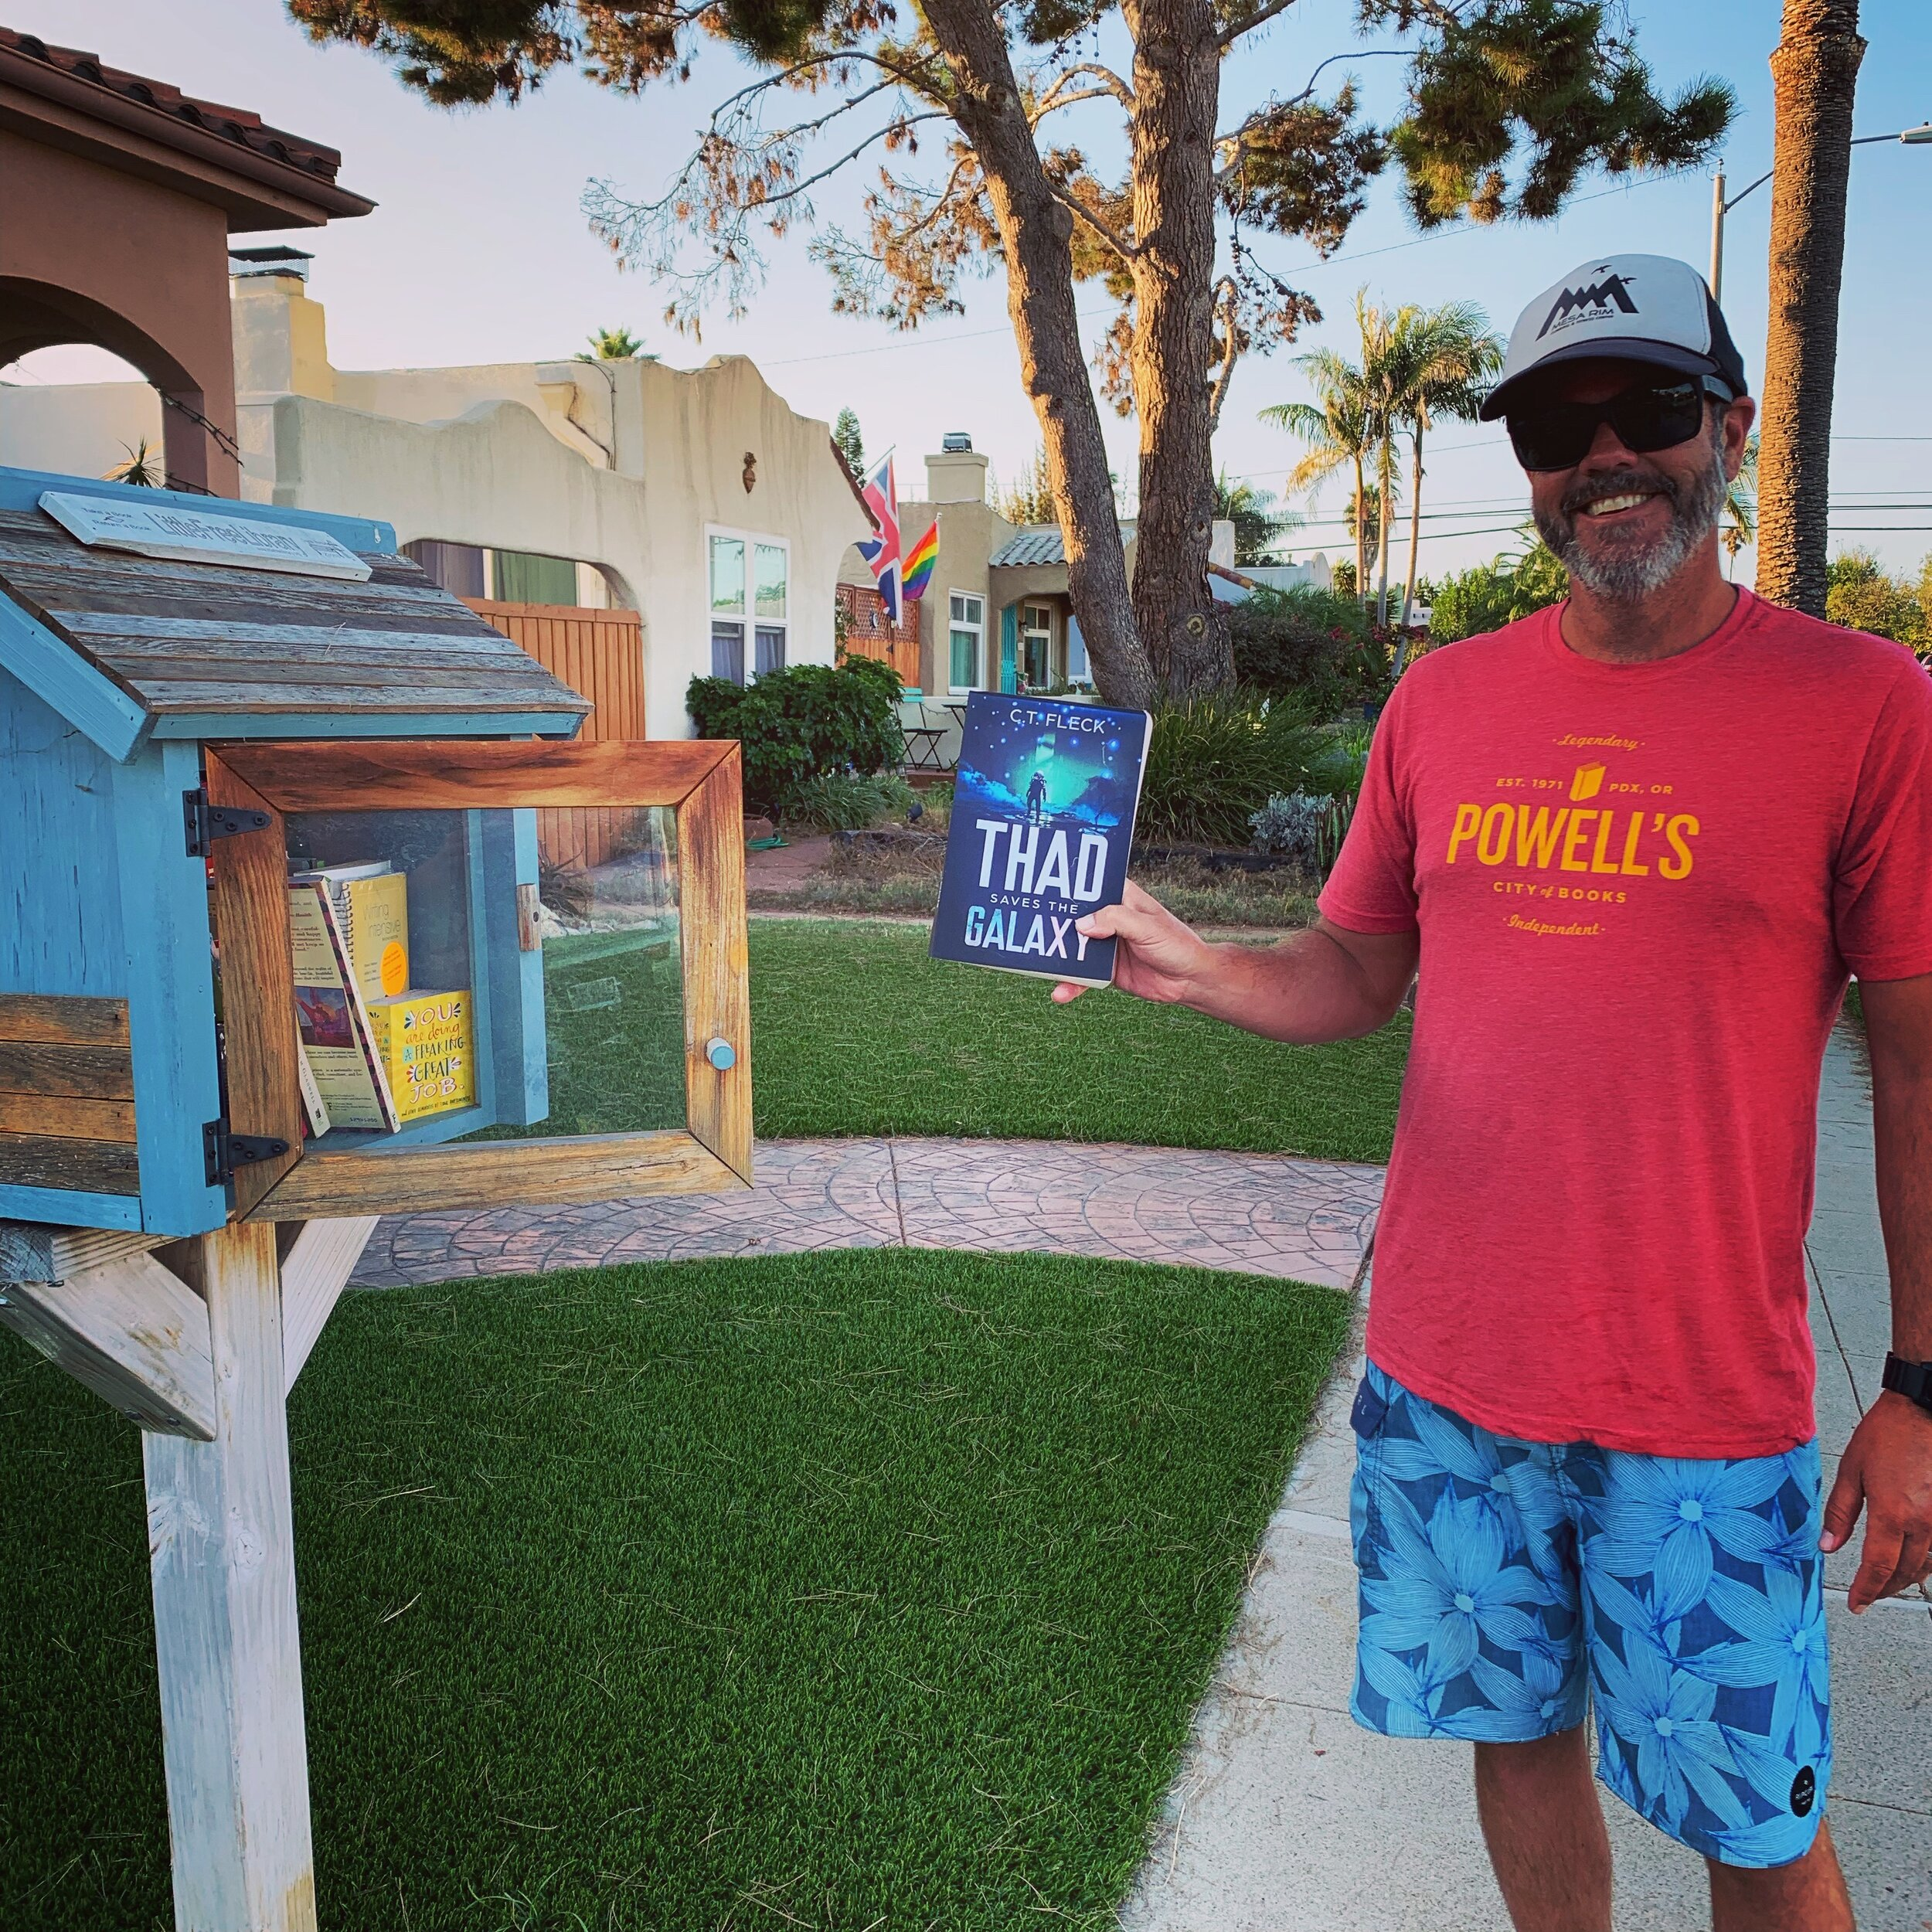 Thad Saves the Galaxy going in to a free little library.